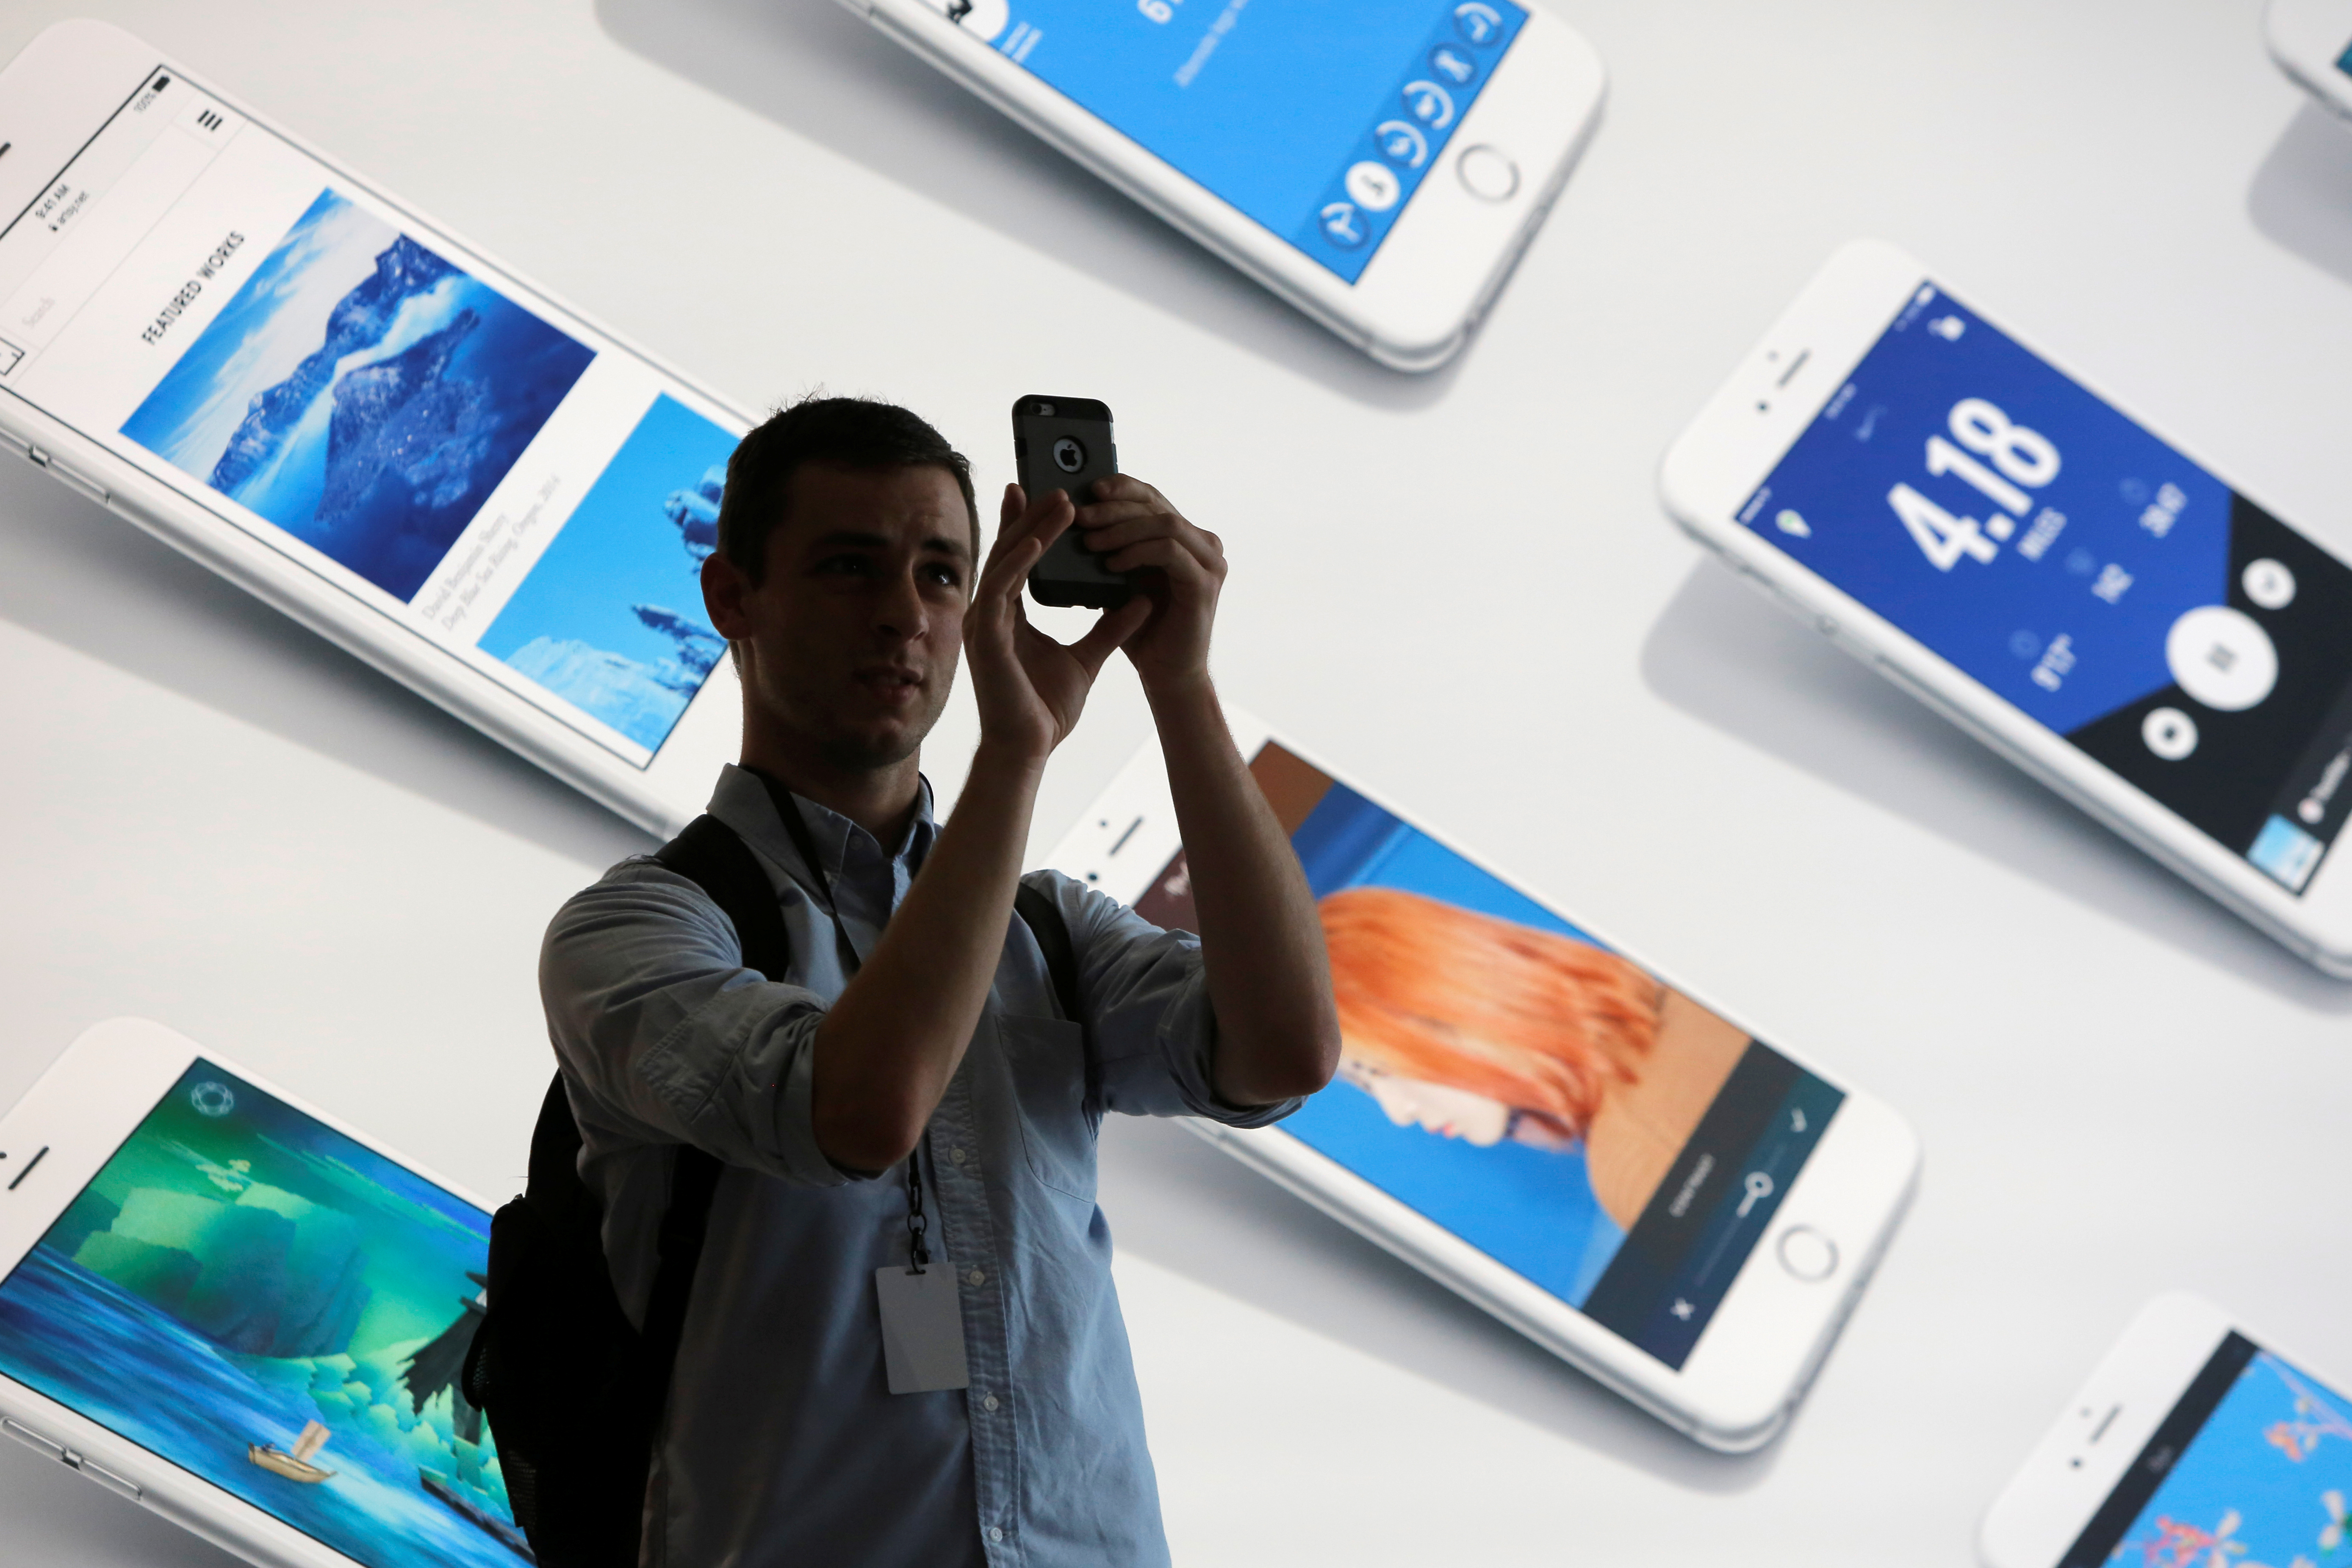 A man uses his iPhone during a preview event at the new Apple Store Williamsburg in Brooklyn, New York